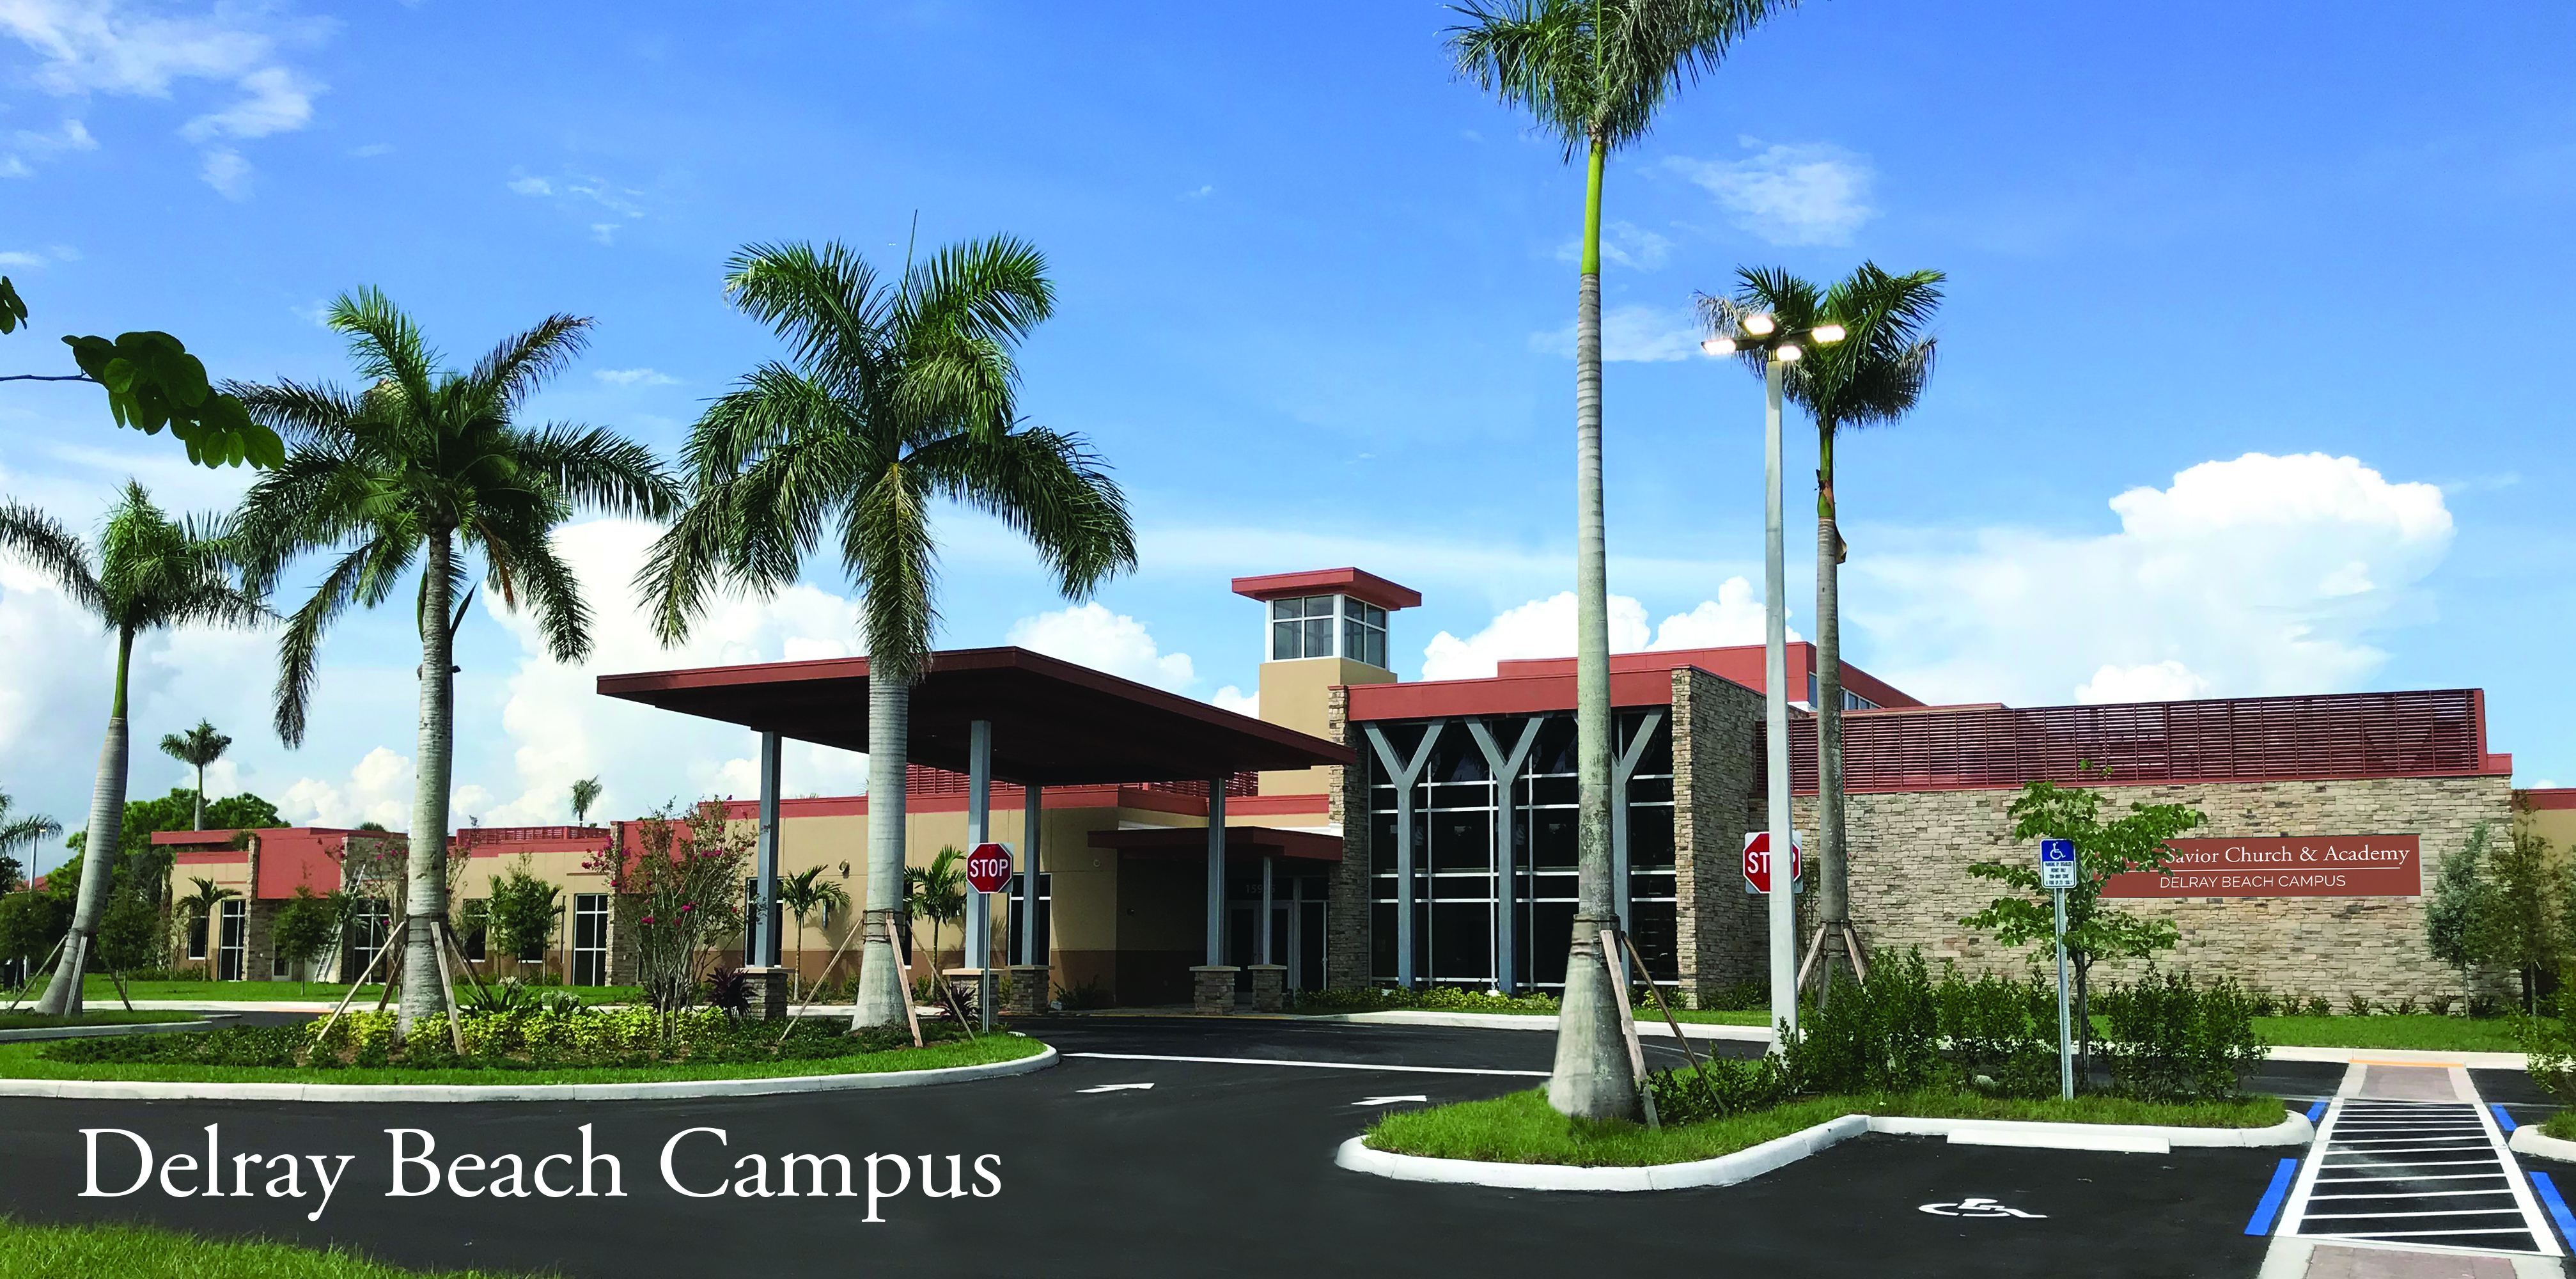 Delray Beach Campus